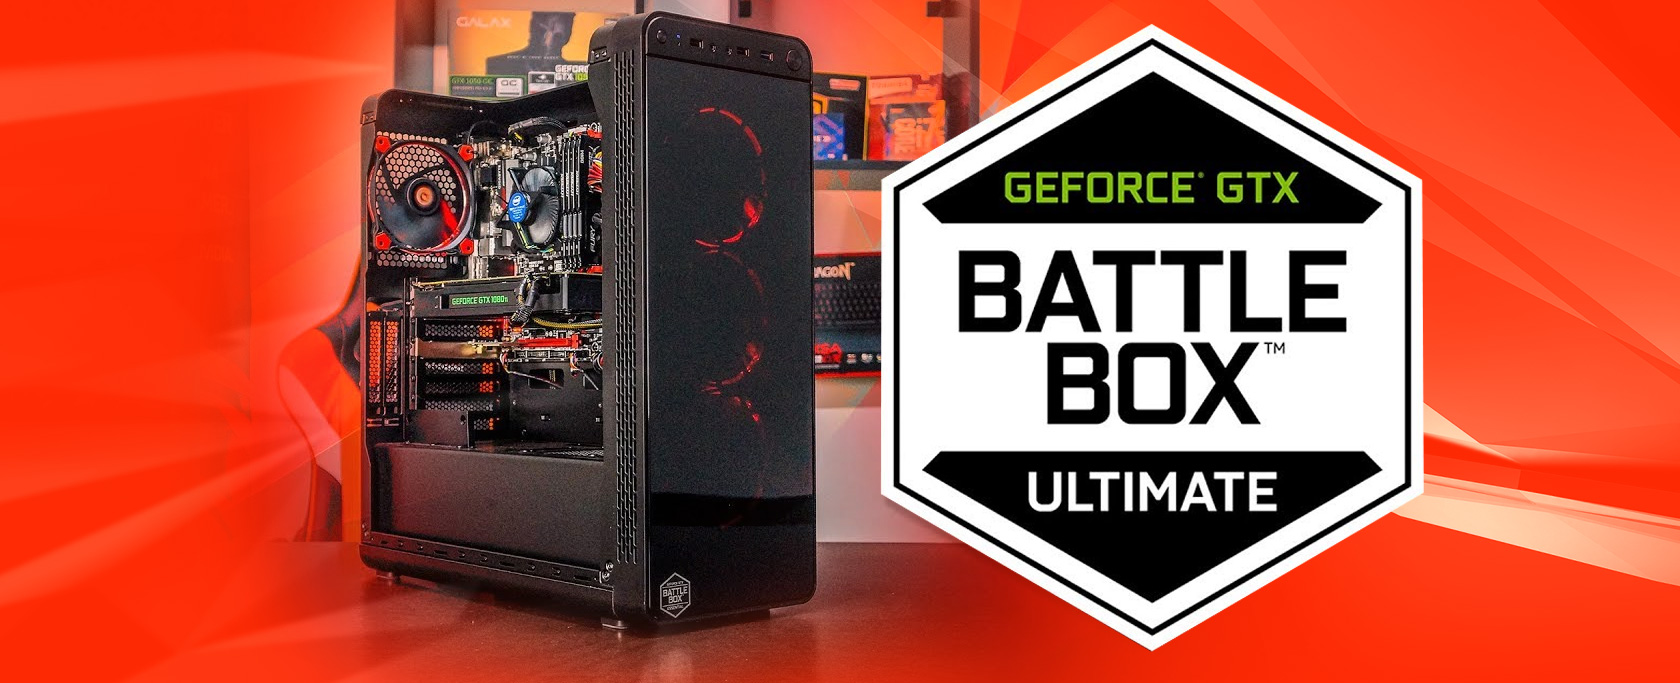 nvidia battlebox ultimate